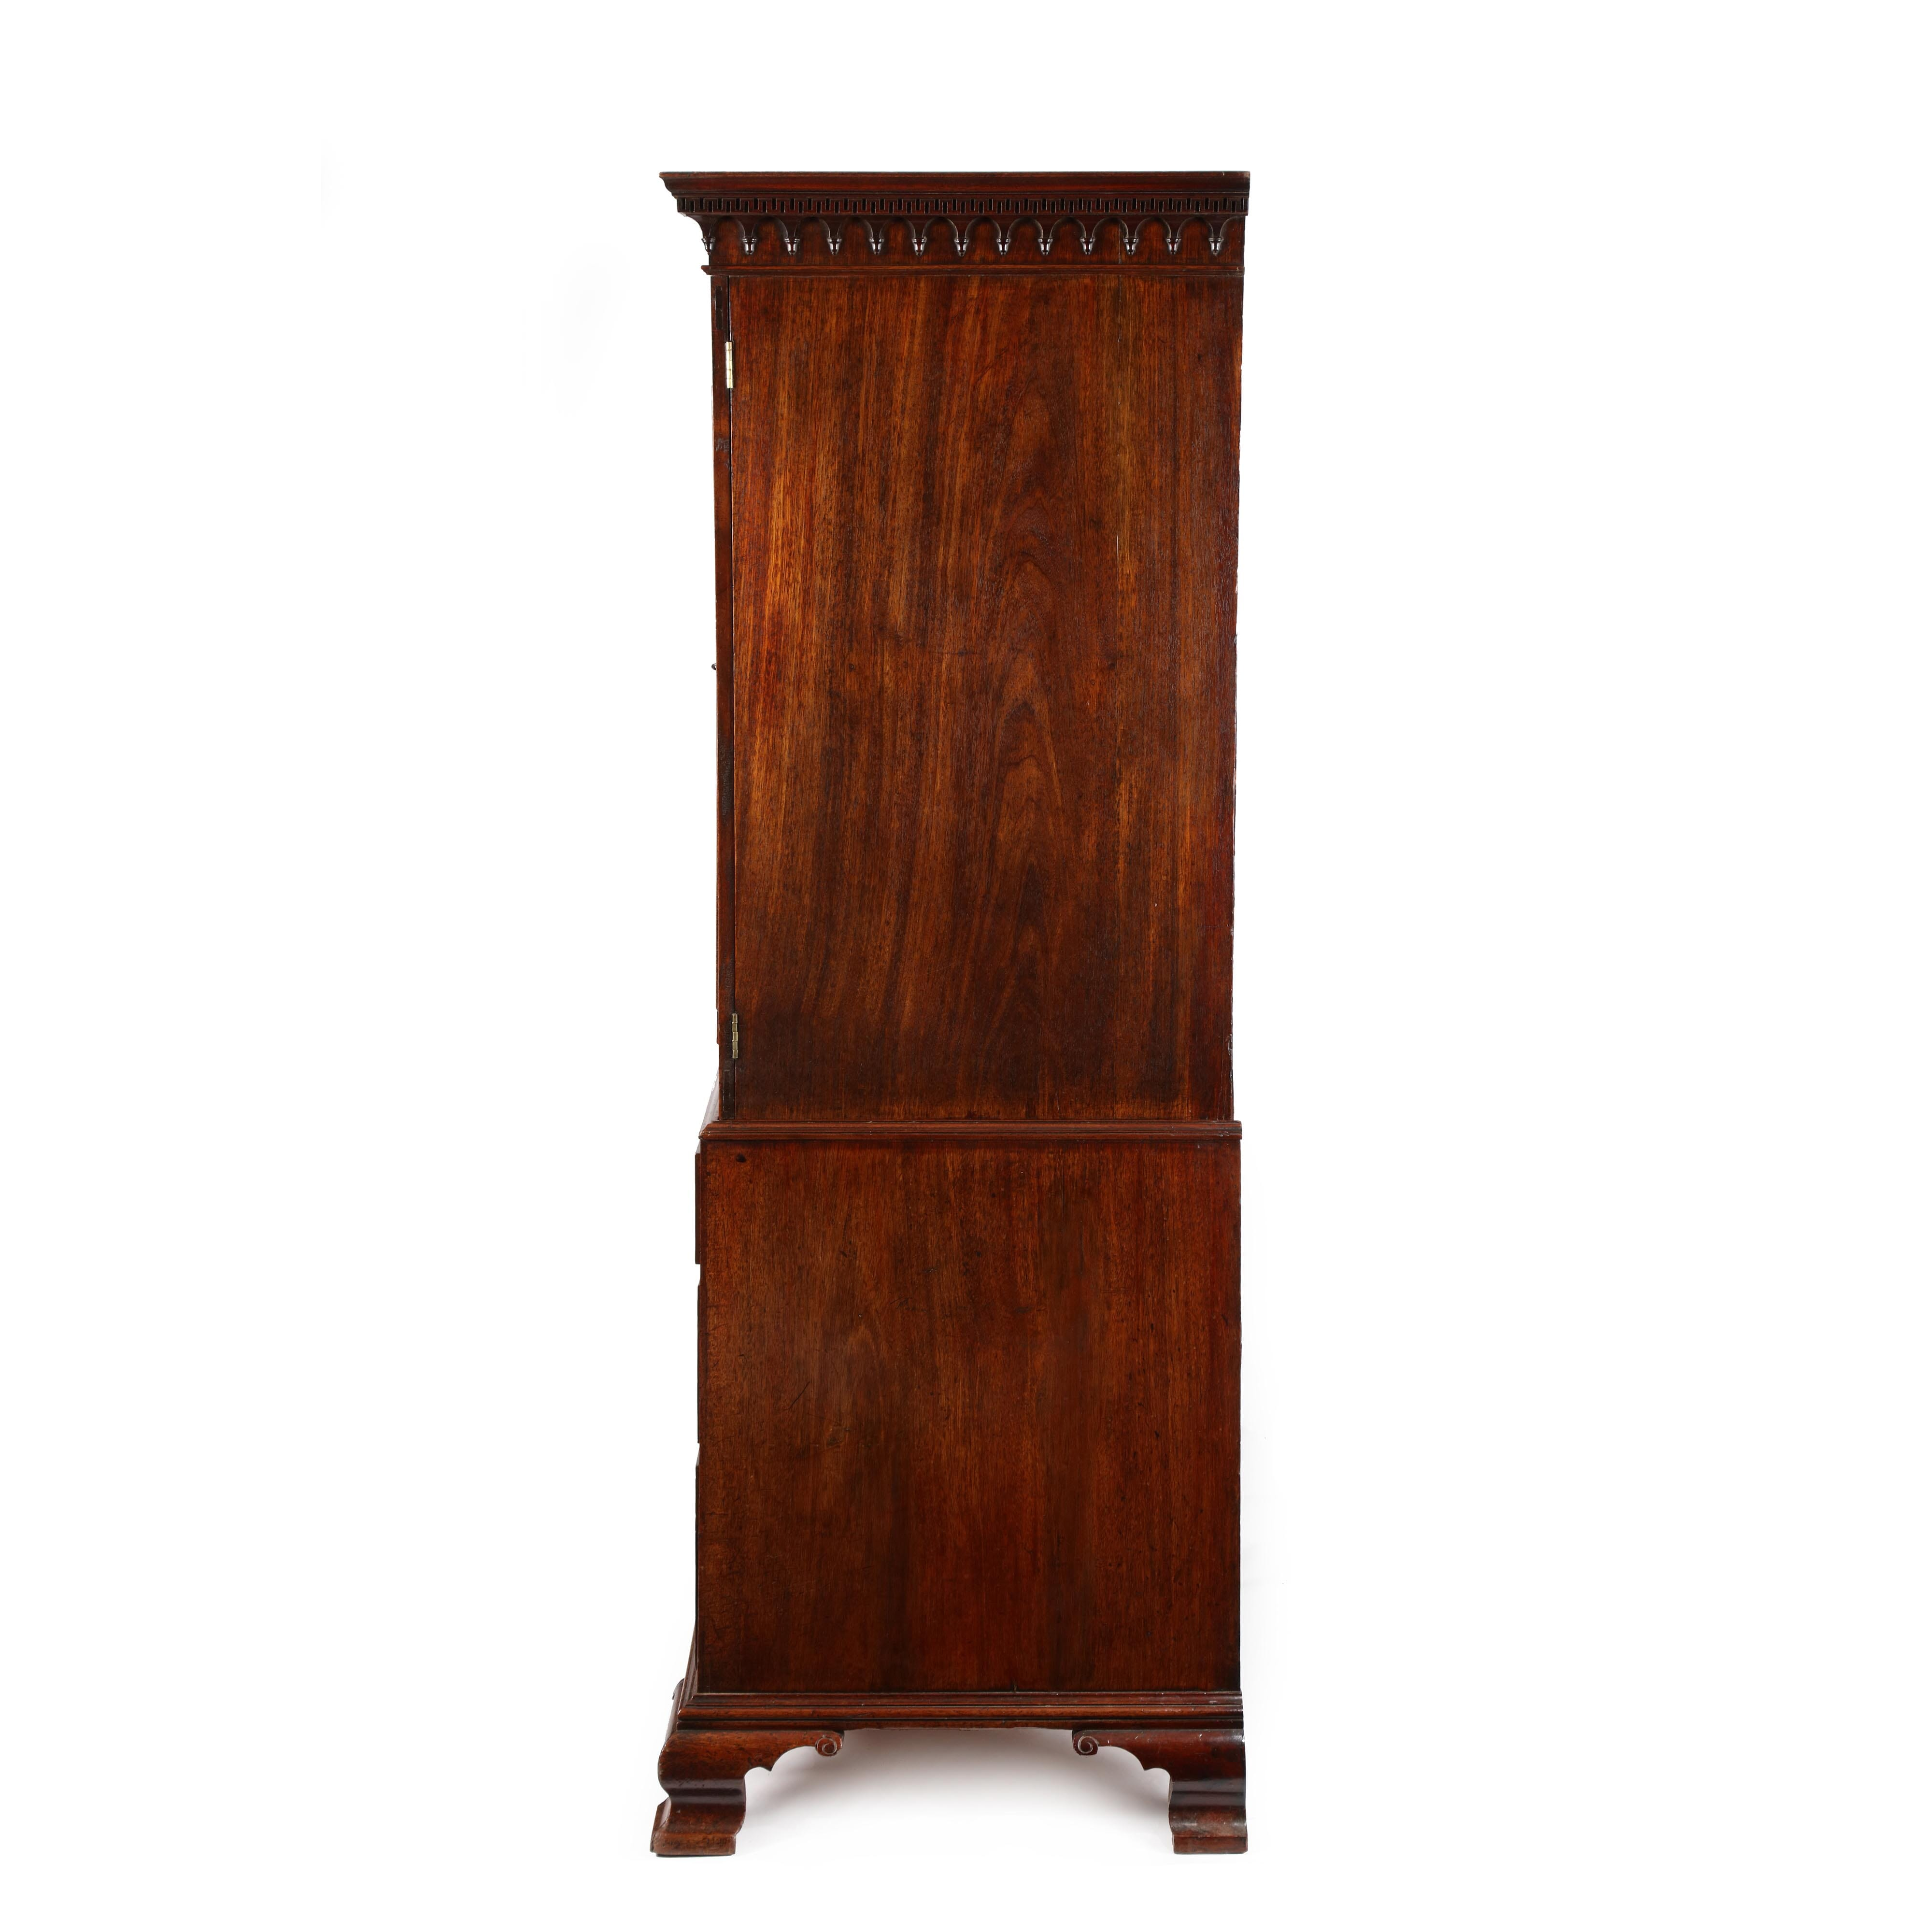 George Iii Mahogany Linen Press In The Manner Of Gillows